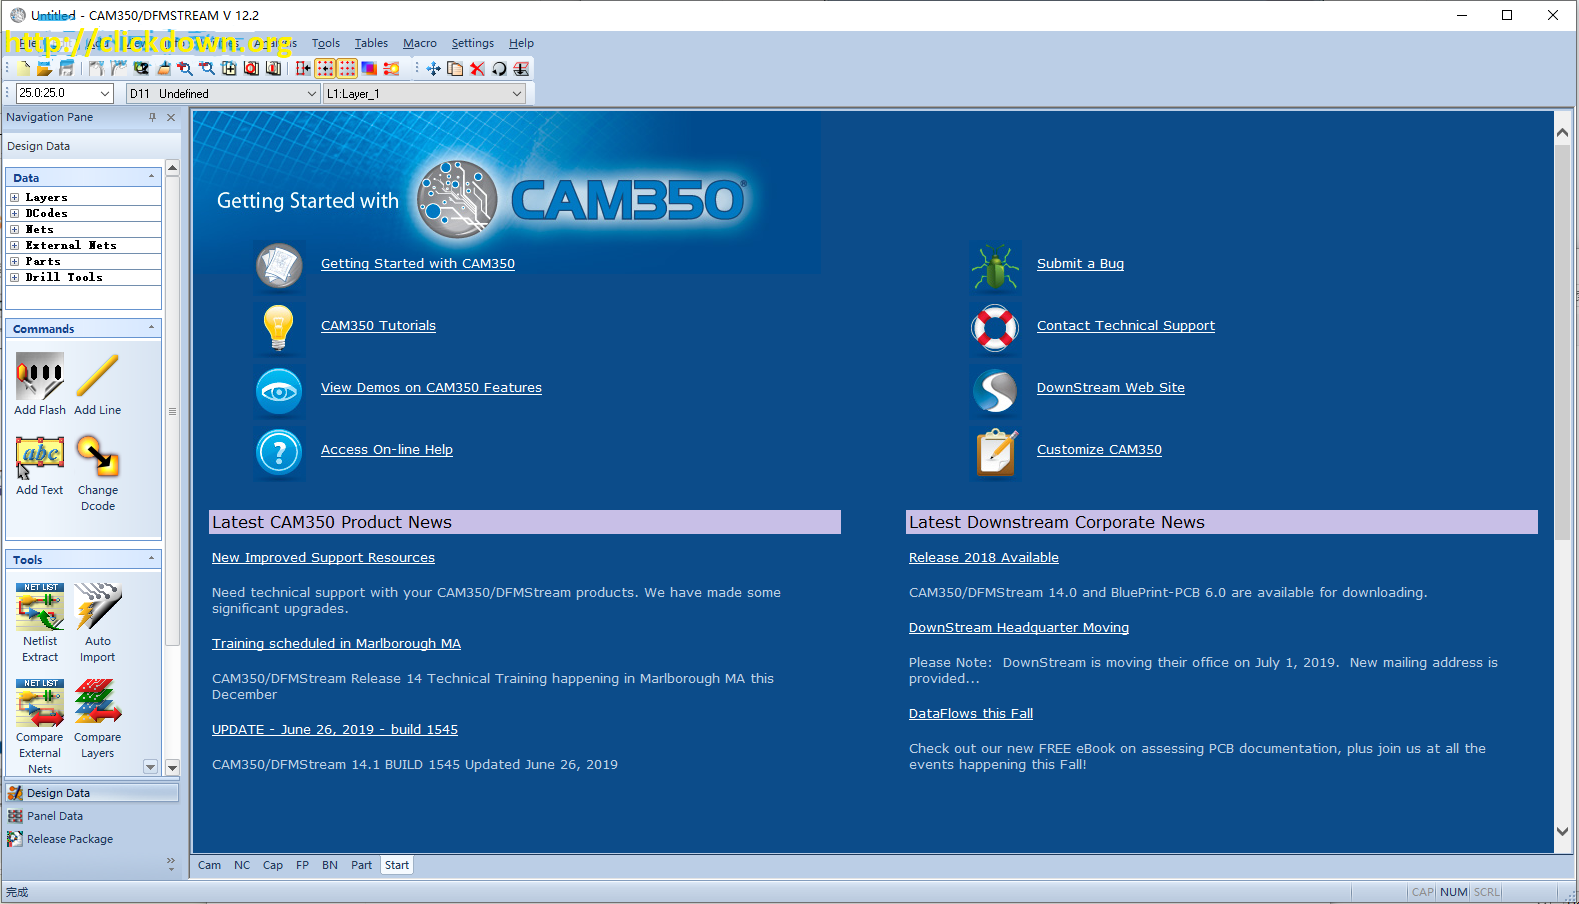 Working with DownStream 2016 CAM350 v12.2 full